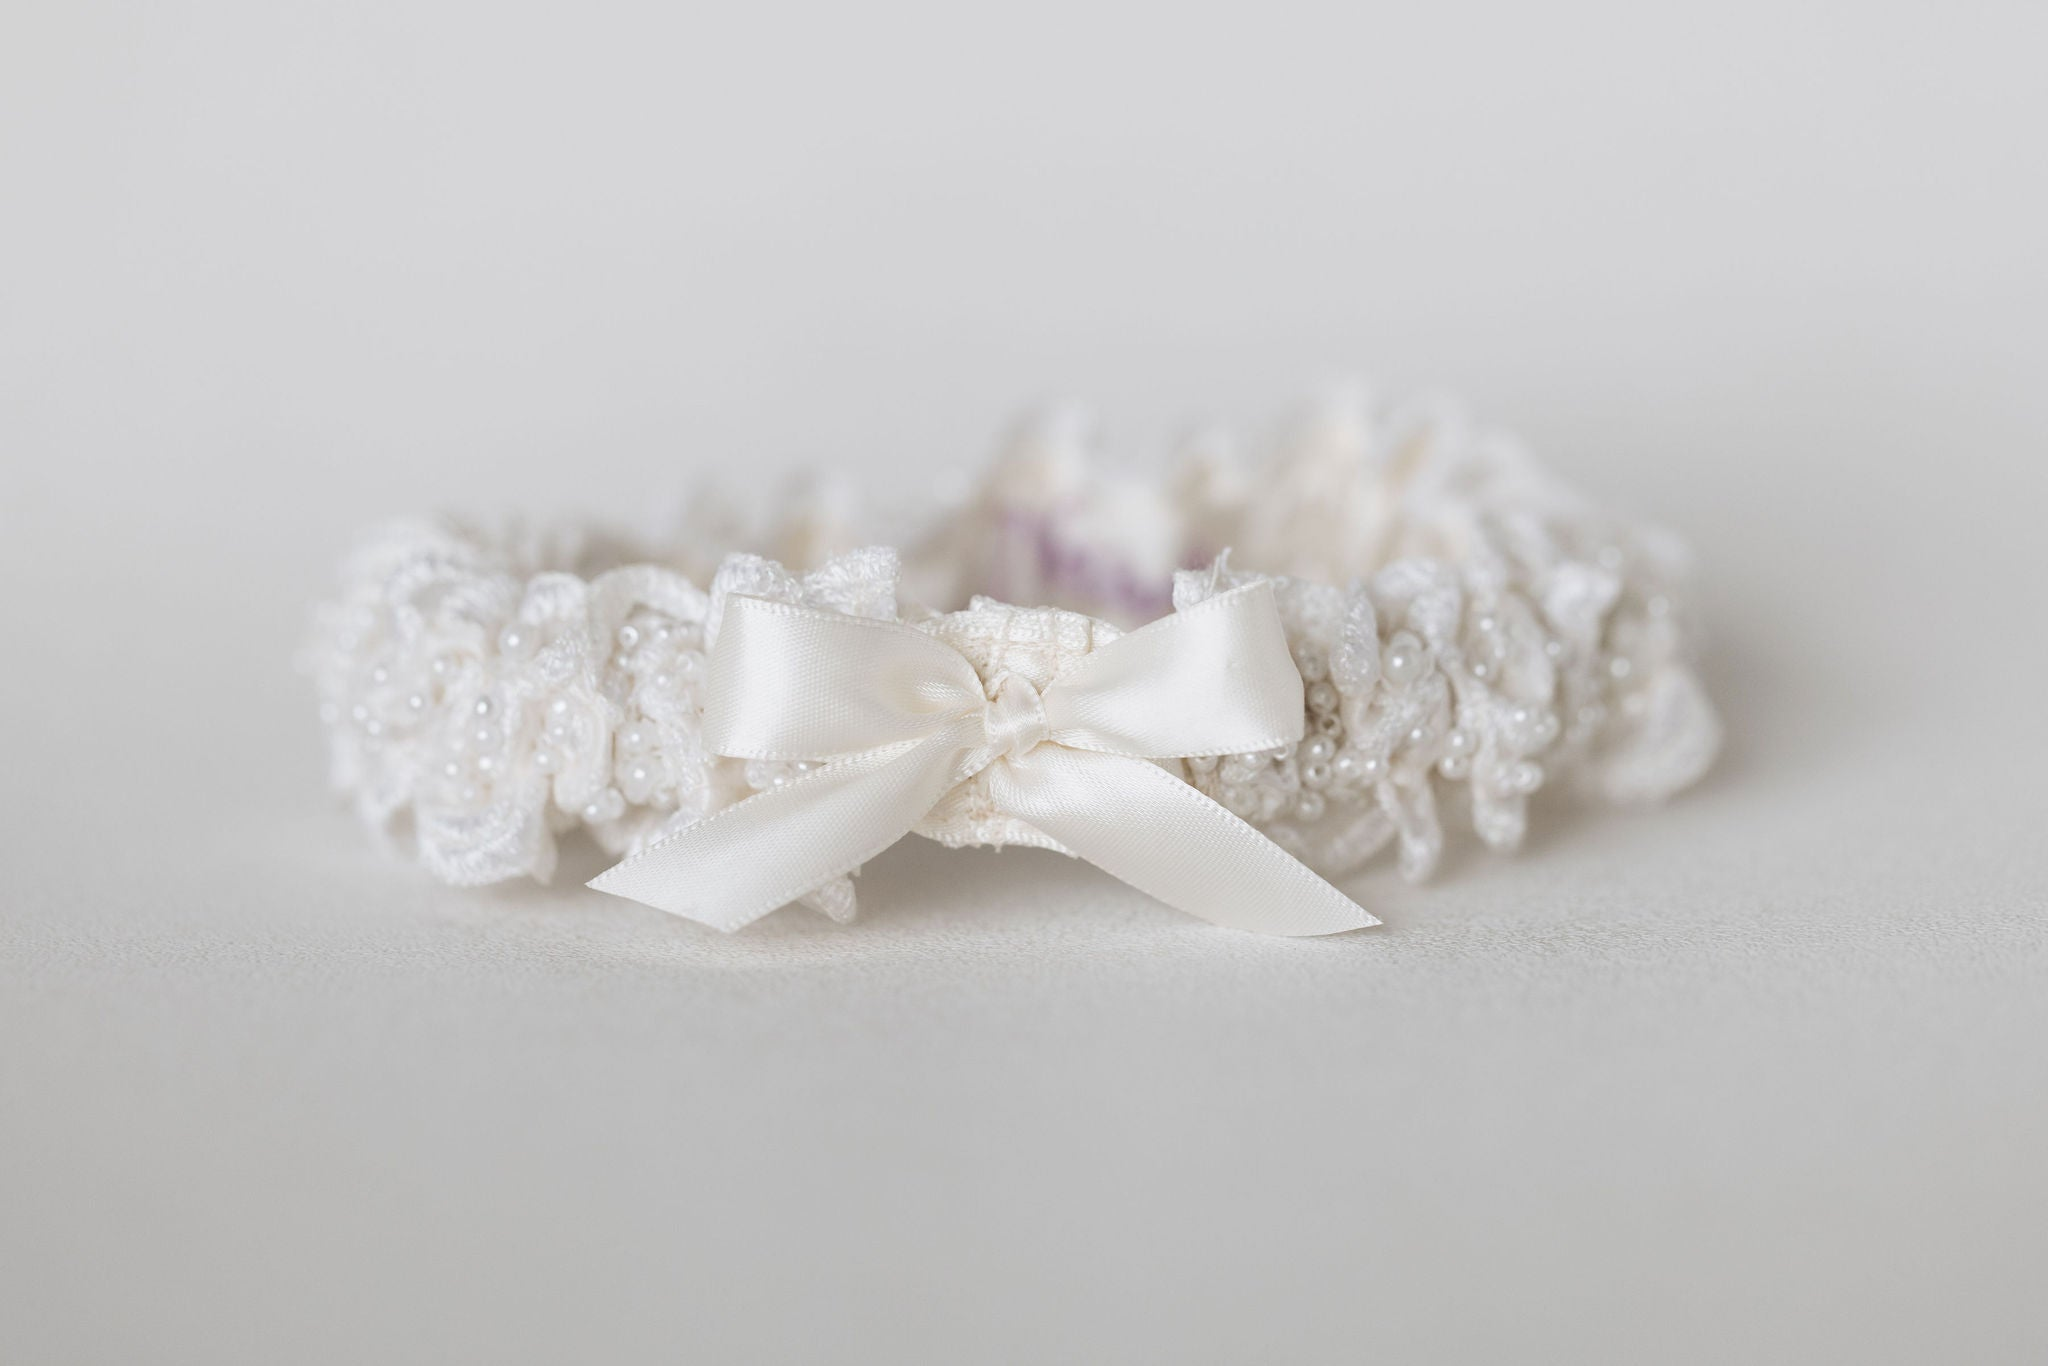 pearls and beaded wedding garter set with personalized hand embroidery handmade by The Garter Girl